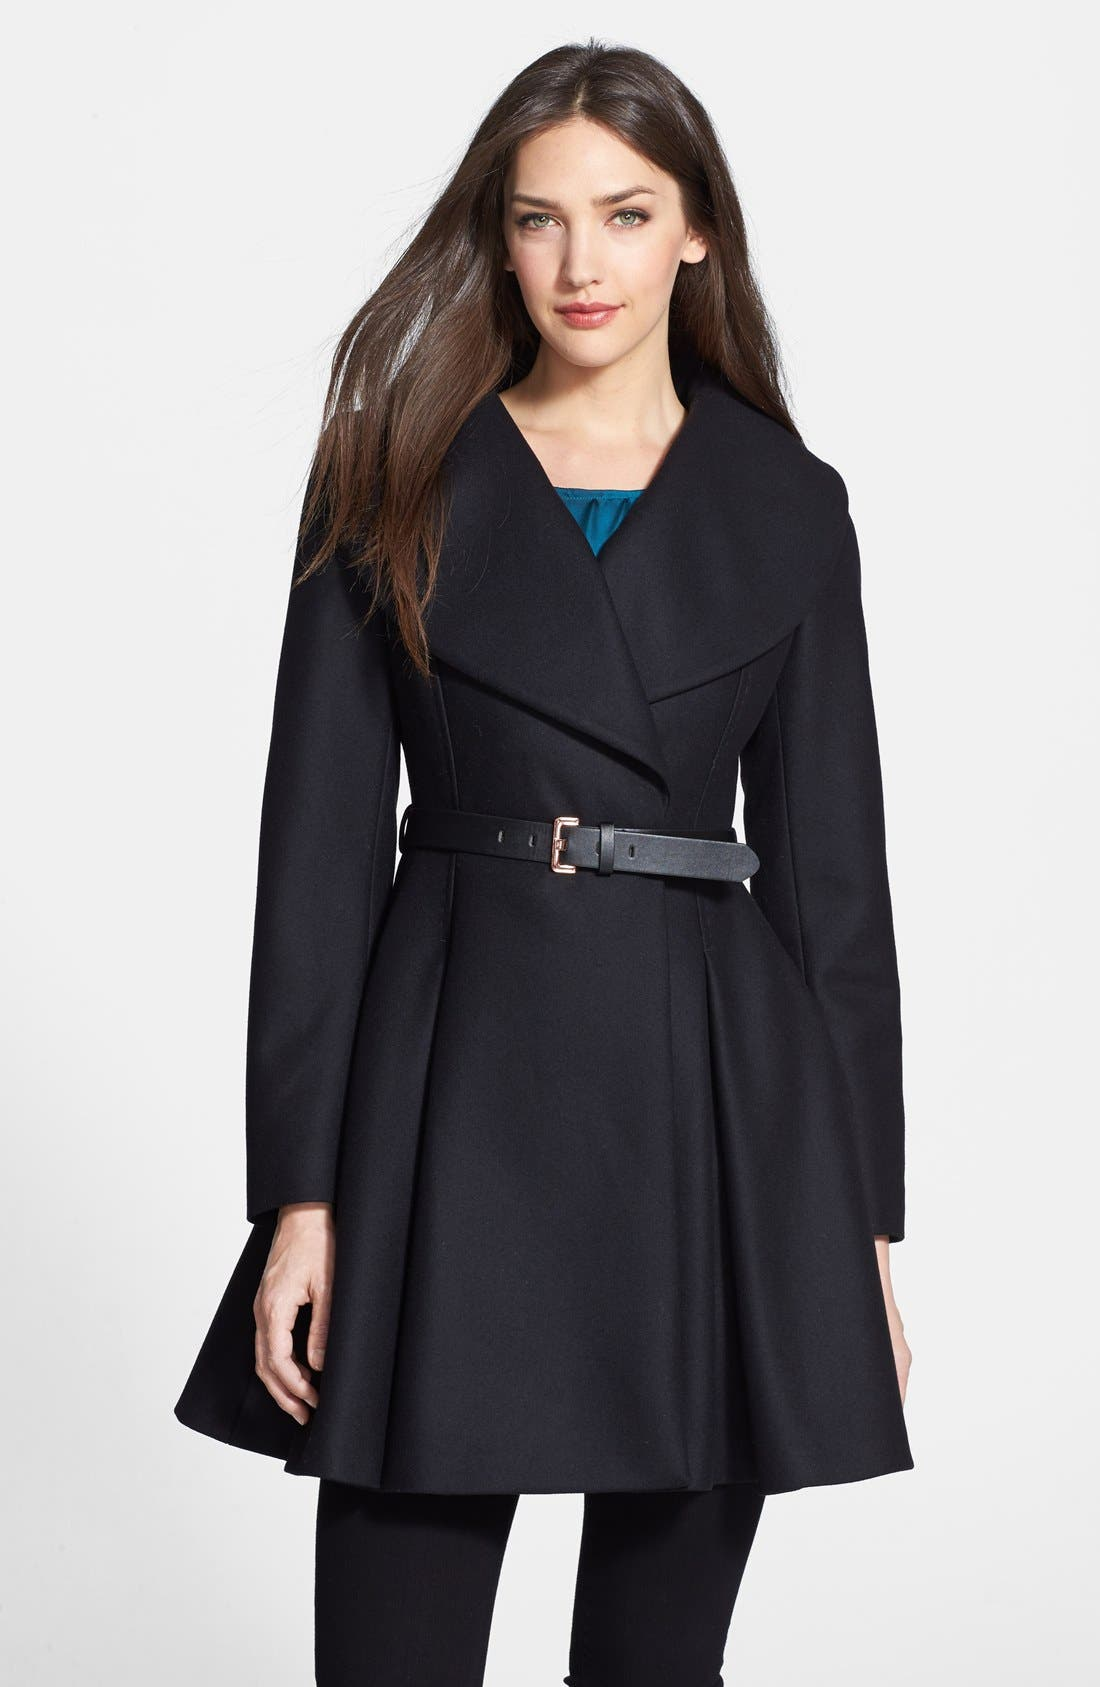 Main Image - Ted Baker London Belted Flare Skirt Wool & Cashmere Blend Coat